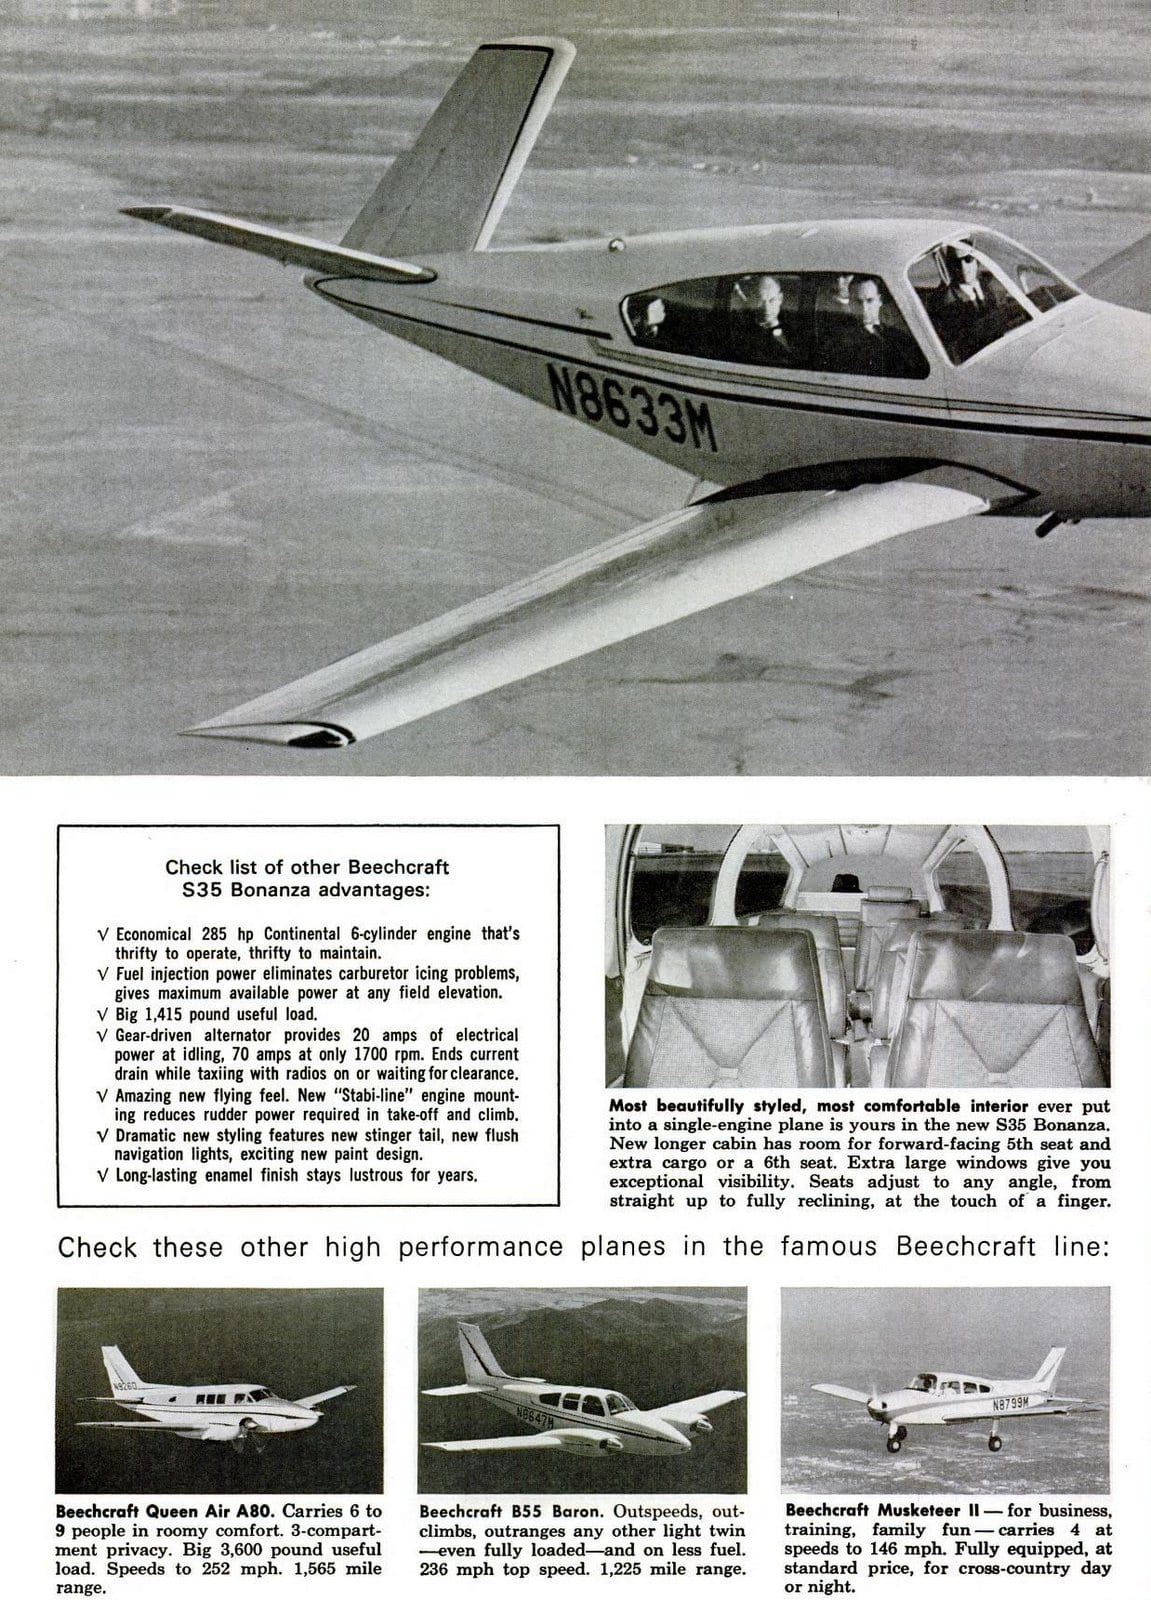 Vintage Beechcraft S-35 aircraft from 1965 (2)